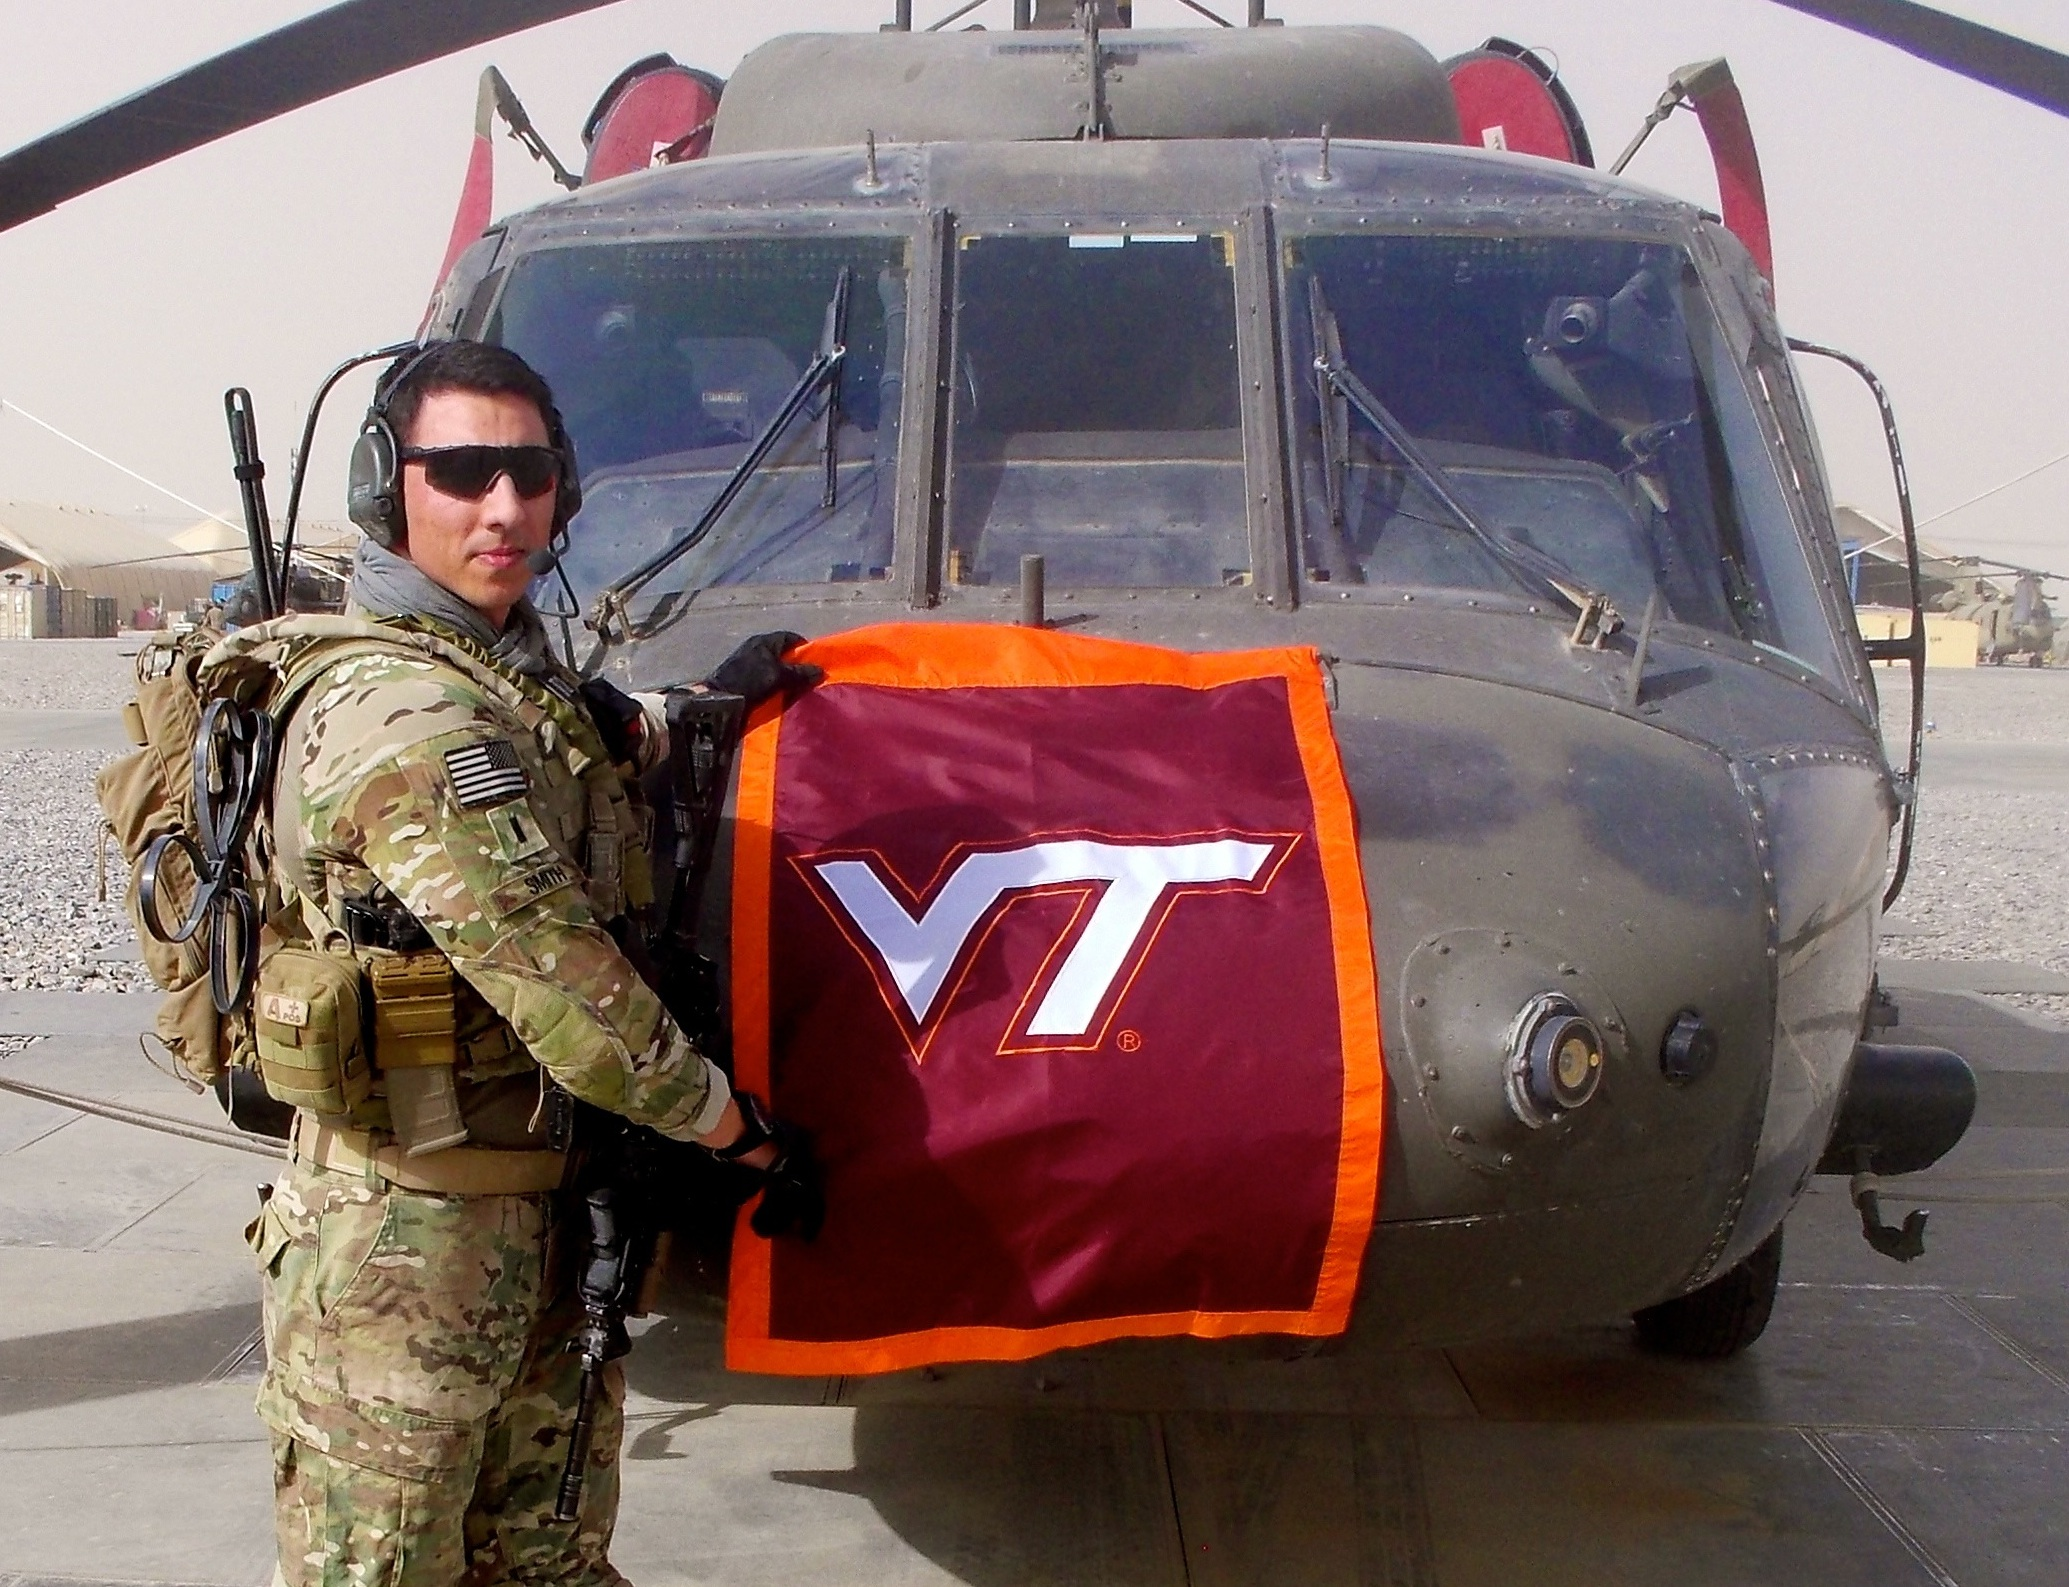 1st Lt. Matthew Smith, U.S. Army, Virginia Tech Corps of Cadets Class of 2011 in front of his helicopter.